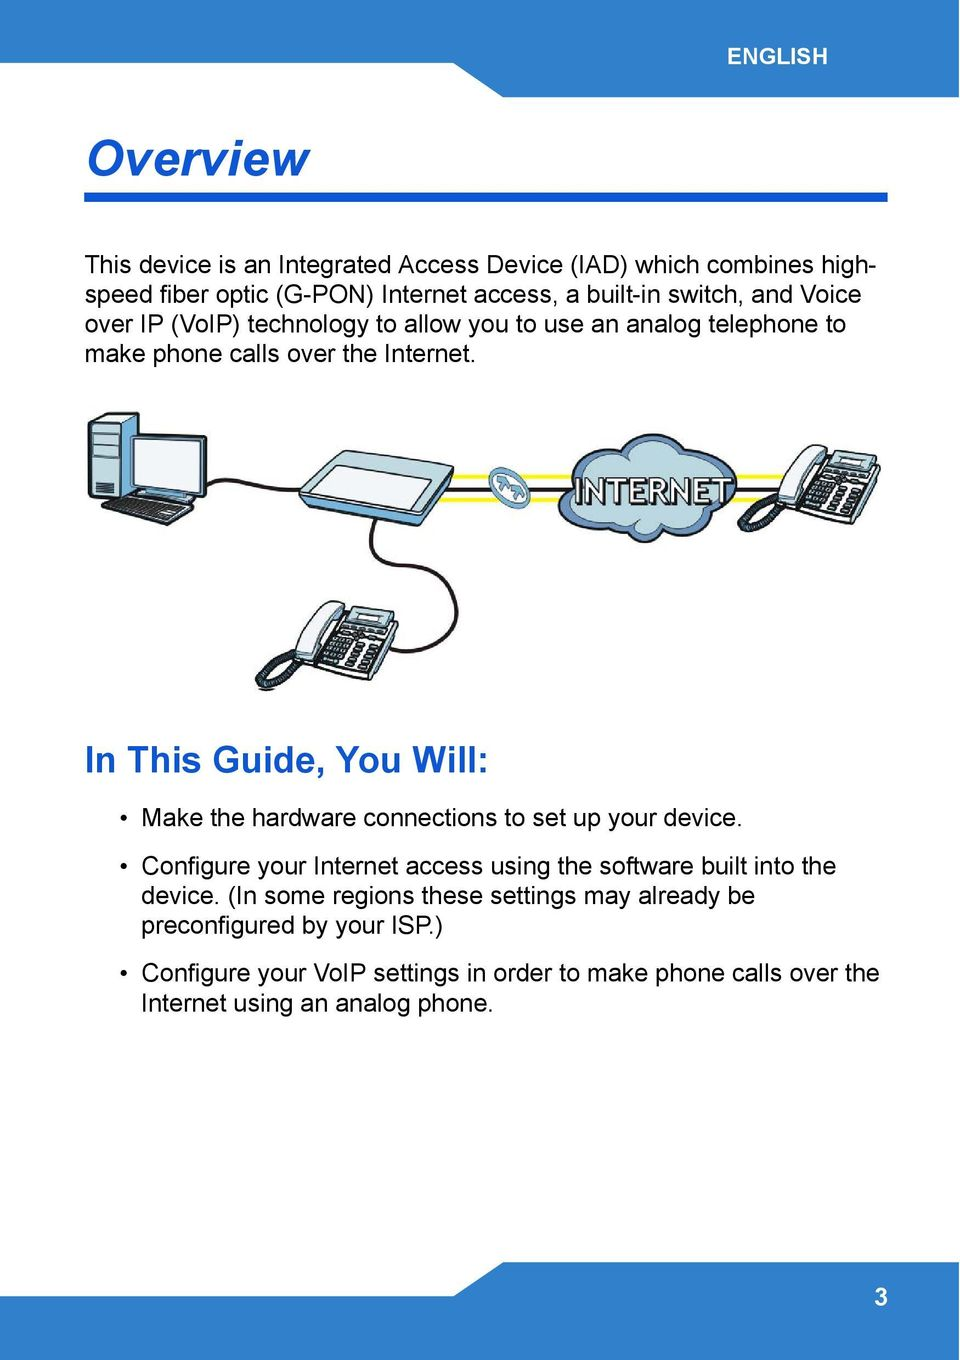 In This Guide, You Will: Make the hardware connections to set up your device.